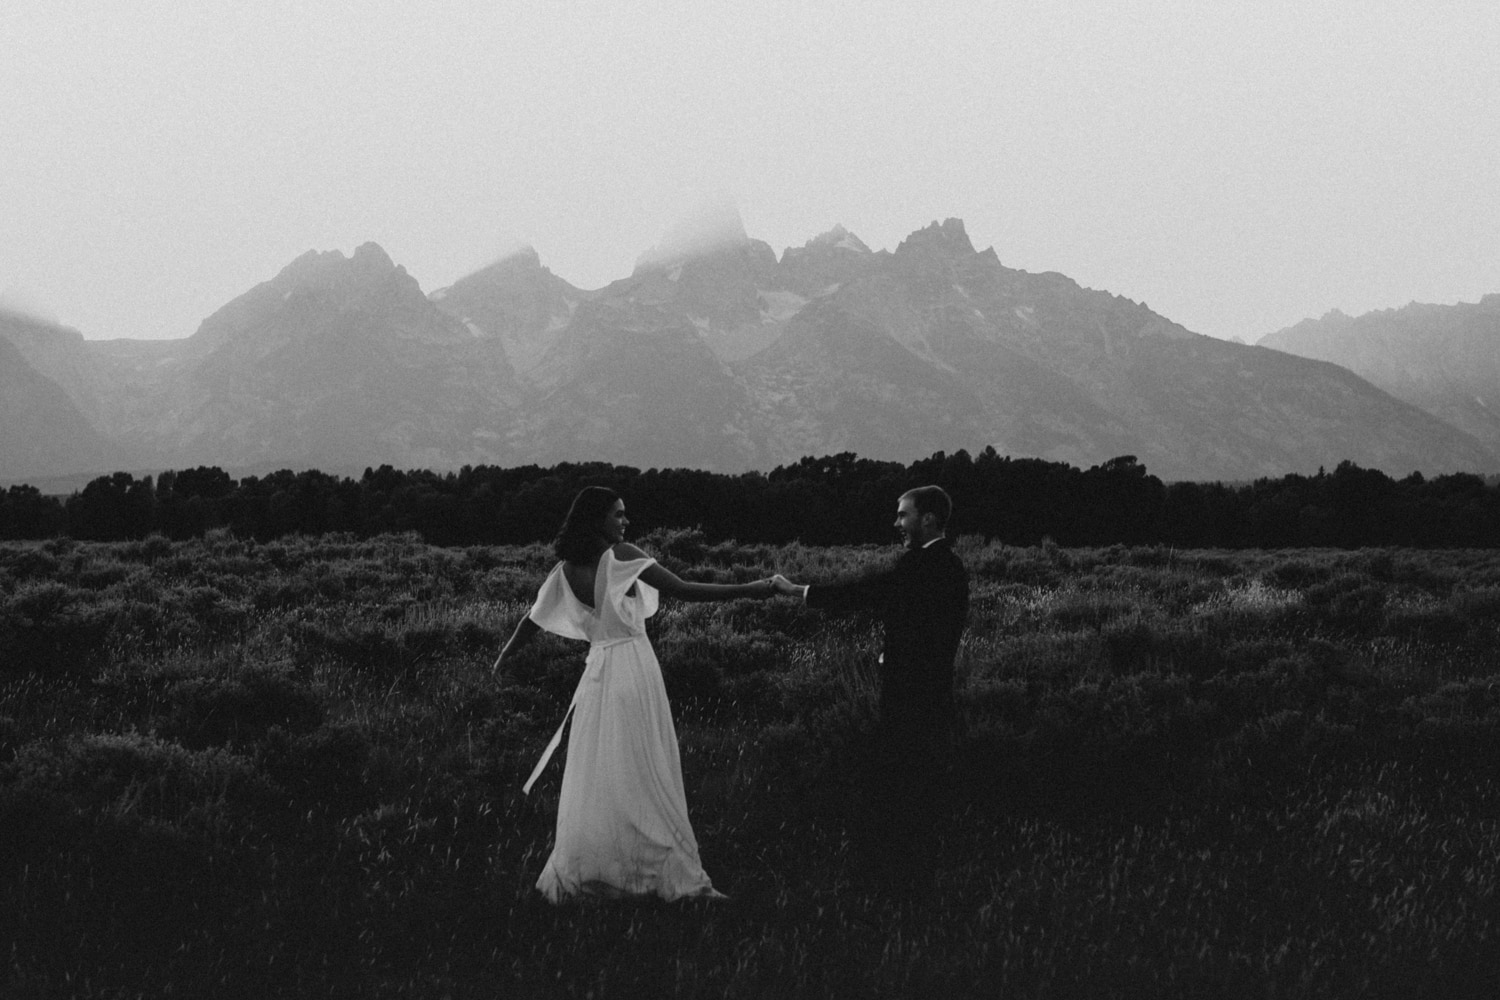 A bride and groom in Grand Teton National Park.